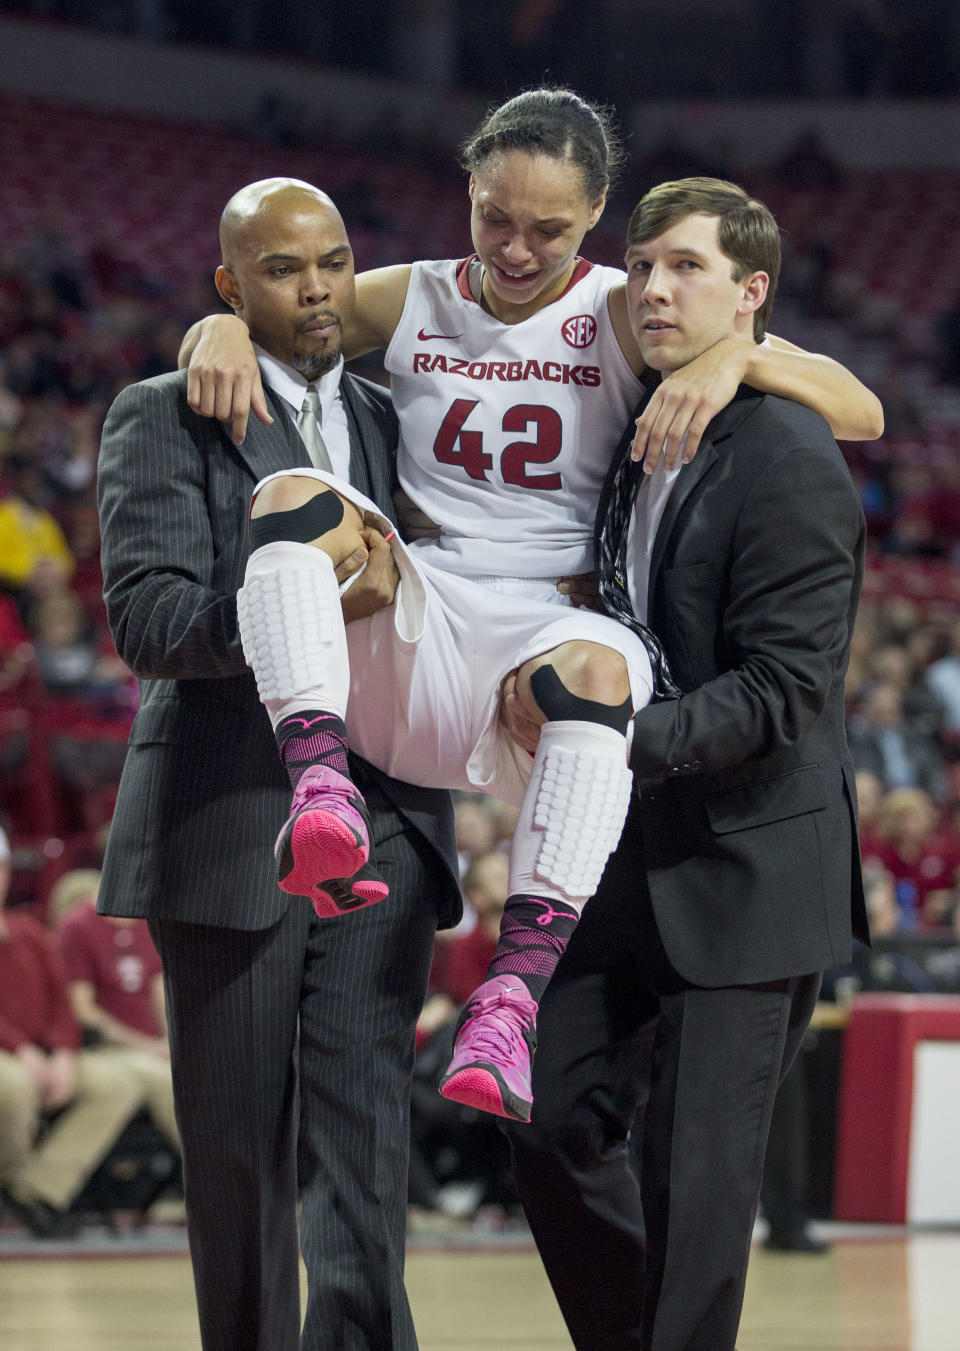 Arkansas forward Jhasmin Bowen, center, is lifted from the court after being injured during the second half of an NCAA college basketball game Thursday, Feb. 26, 2015, in Fayetteville, Ark. Kentucky defeated Arkansas 56-51. (AP Photo/Gareth Patterson)